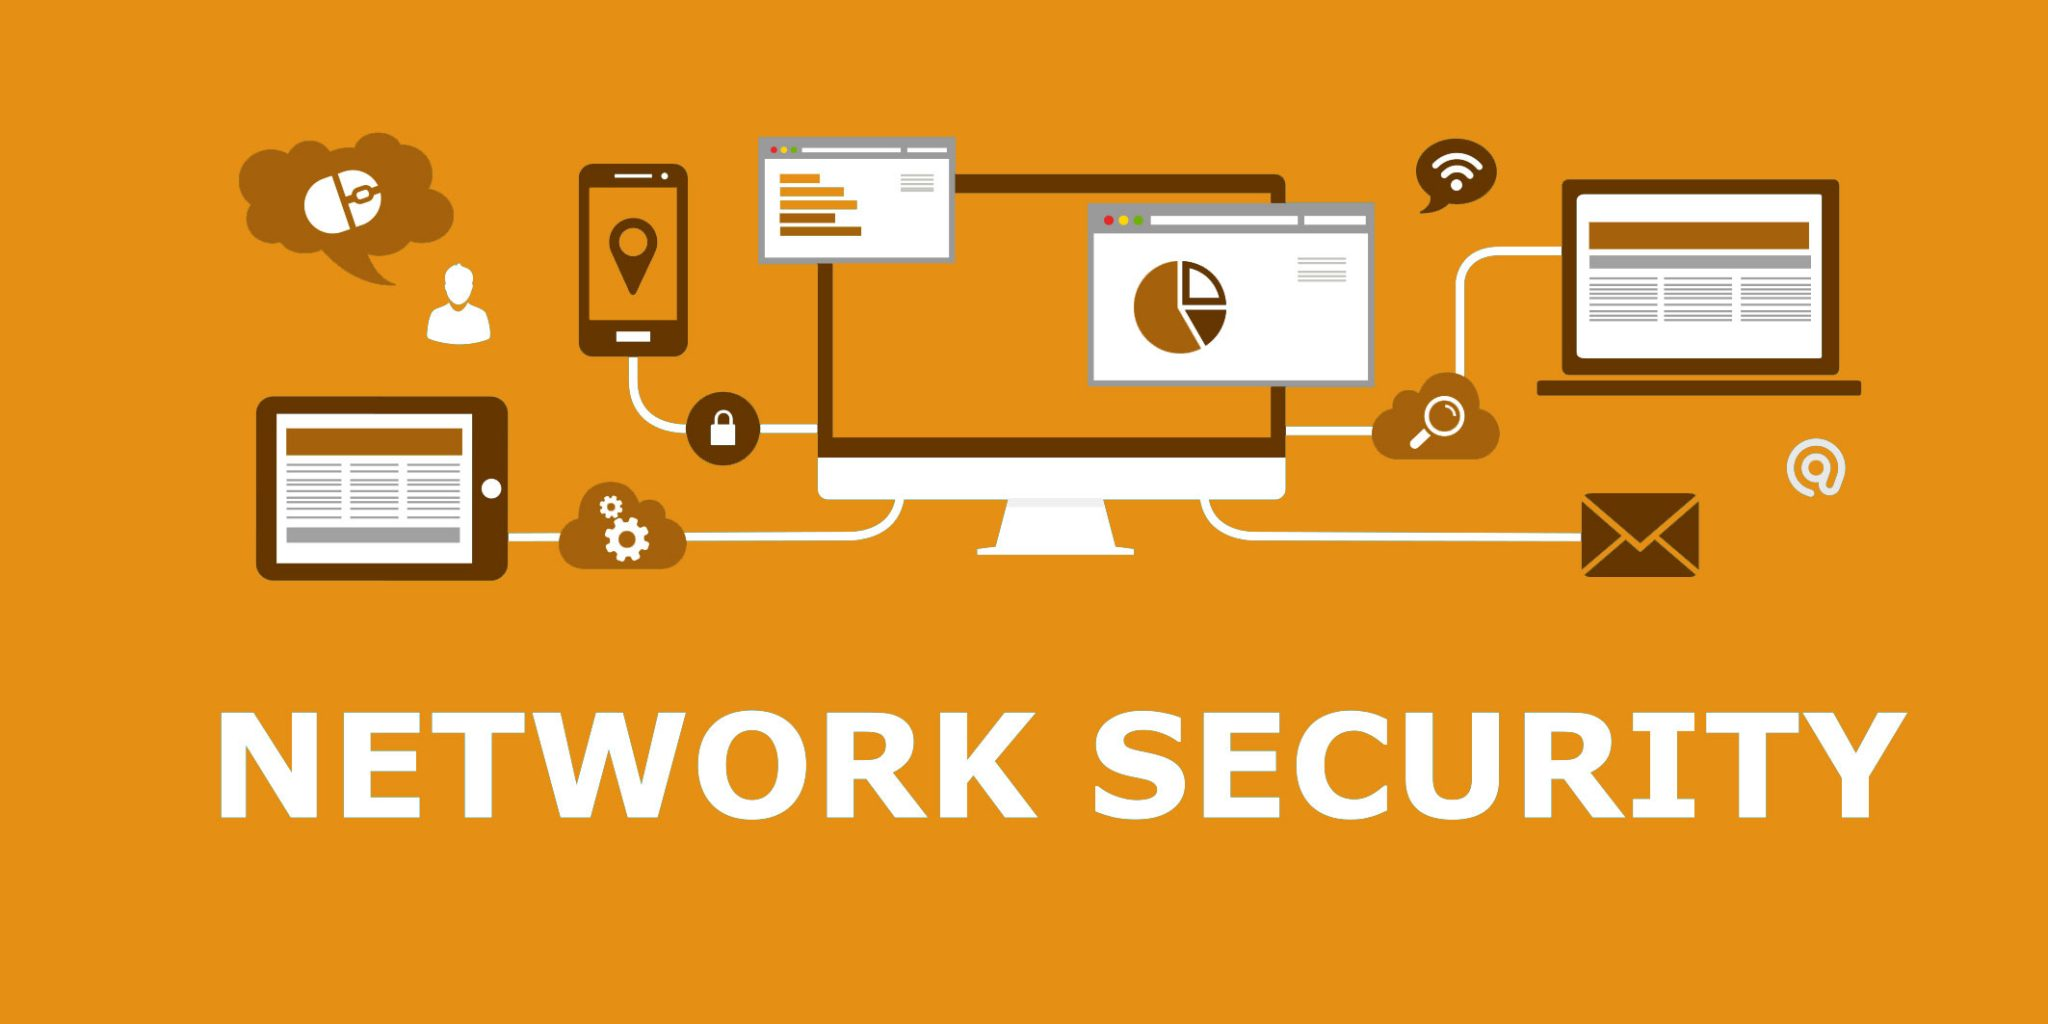 Be Proactive In Your Network Security By Following These Steps